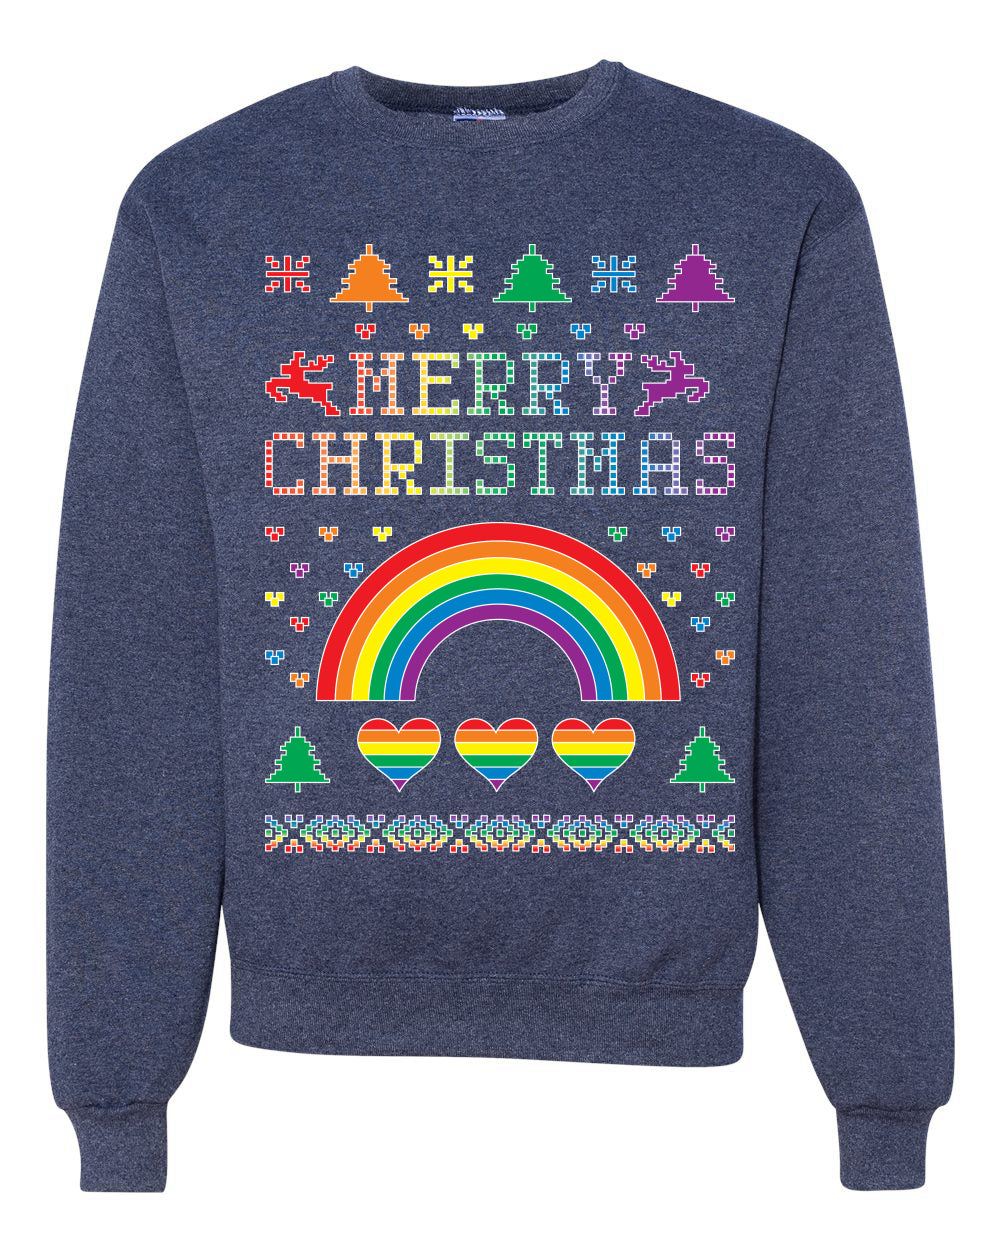 Merry Christmas Rainbow Hearts Unisex Crewneck Graphic Sweatshirt